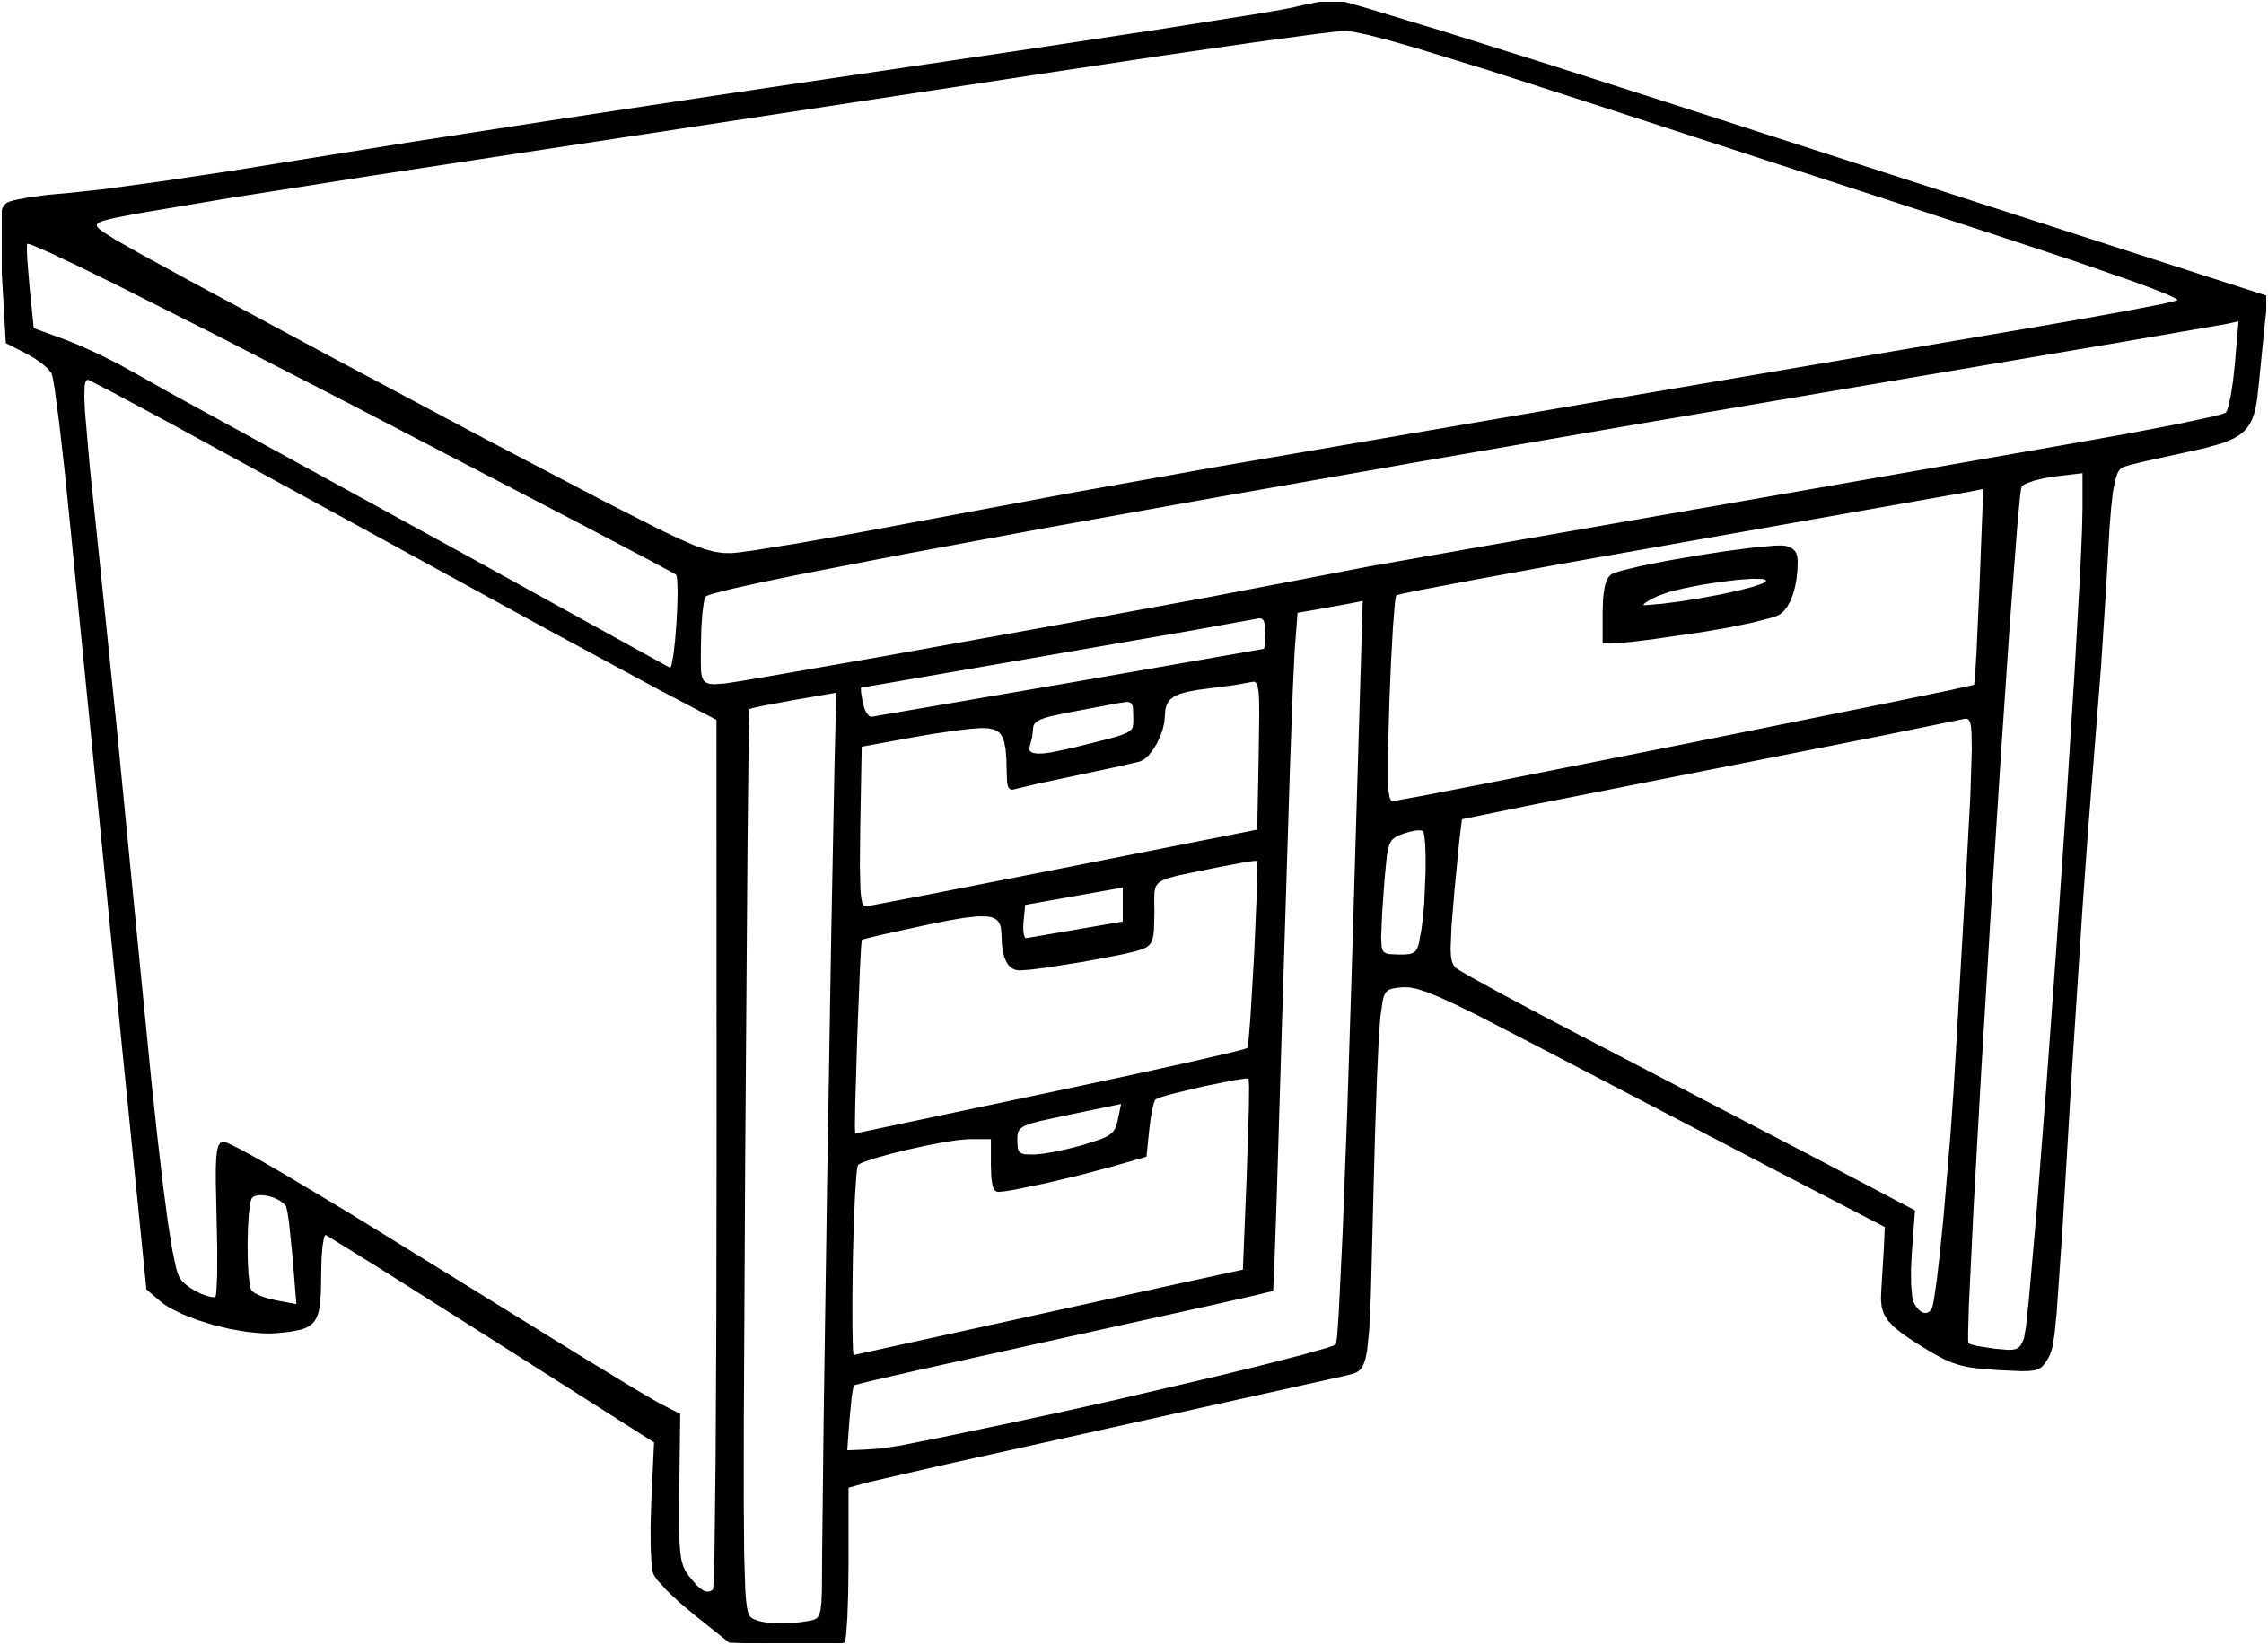 school desk coloring pages schoolboy coloring page to print in 2020 with images desk school coloring pages